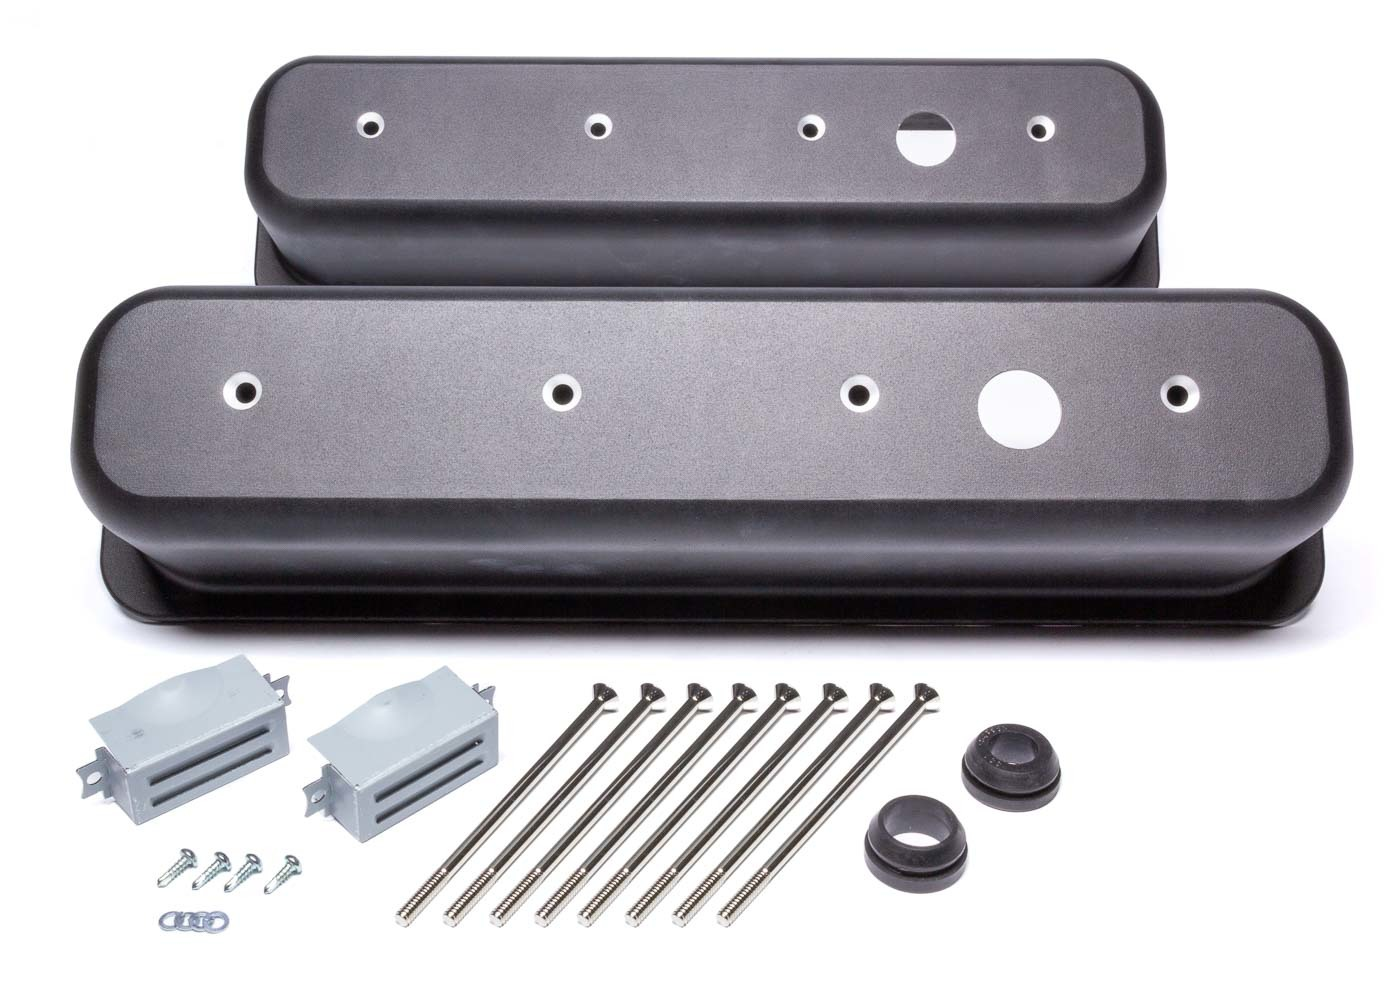 Racing Power Company R6146-1BK Valve Cover, Tall, 3-11/16 in Height, Breather Holes, Hardware Included, Aluminum, Black Paint, Center Bolt, Small Block Chevy, Pair